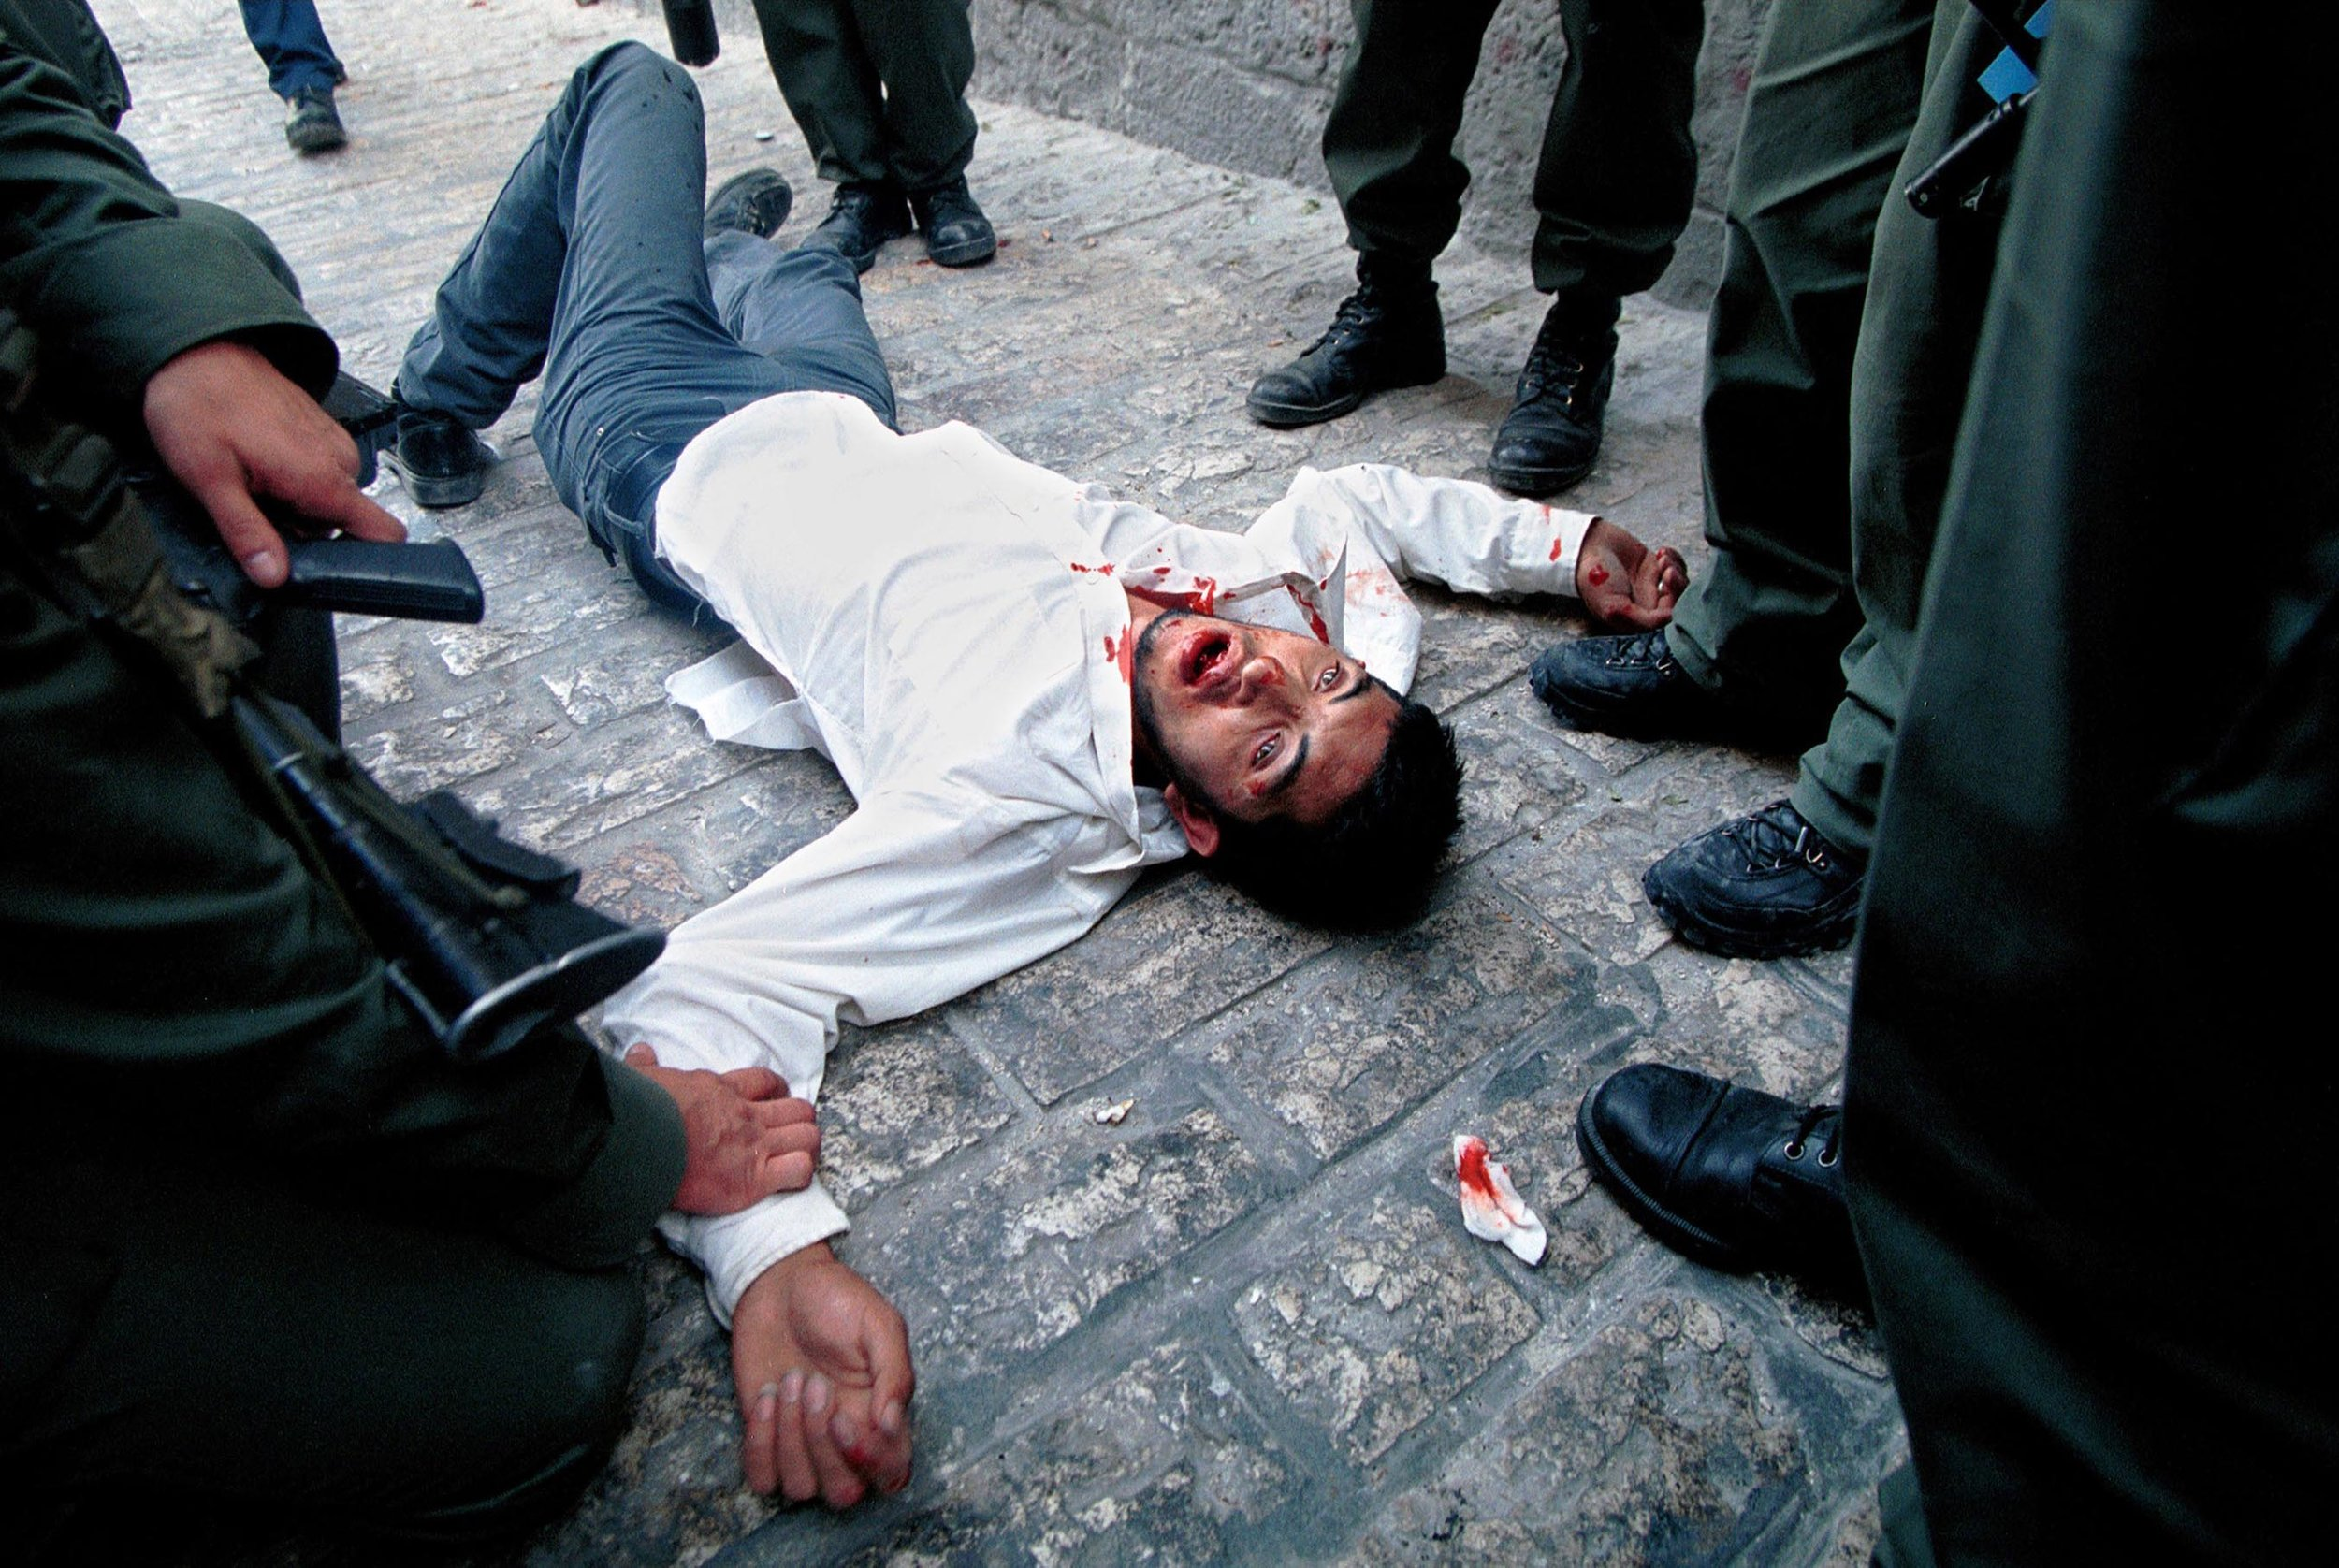 2001- A Palestinian man lies wounded and surrounded by Israeli police after being shot in the mouth by a rubber coated metal bullet during clashes in east Jerusalem.